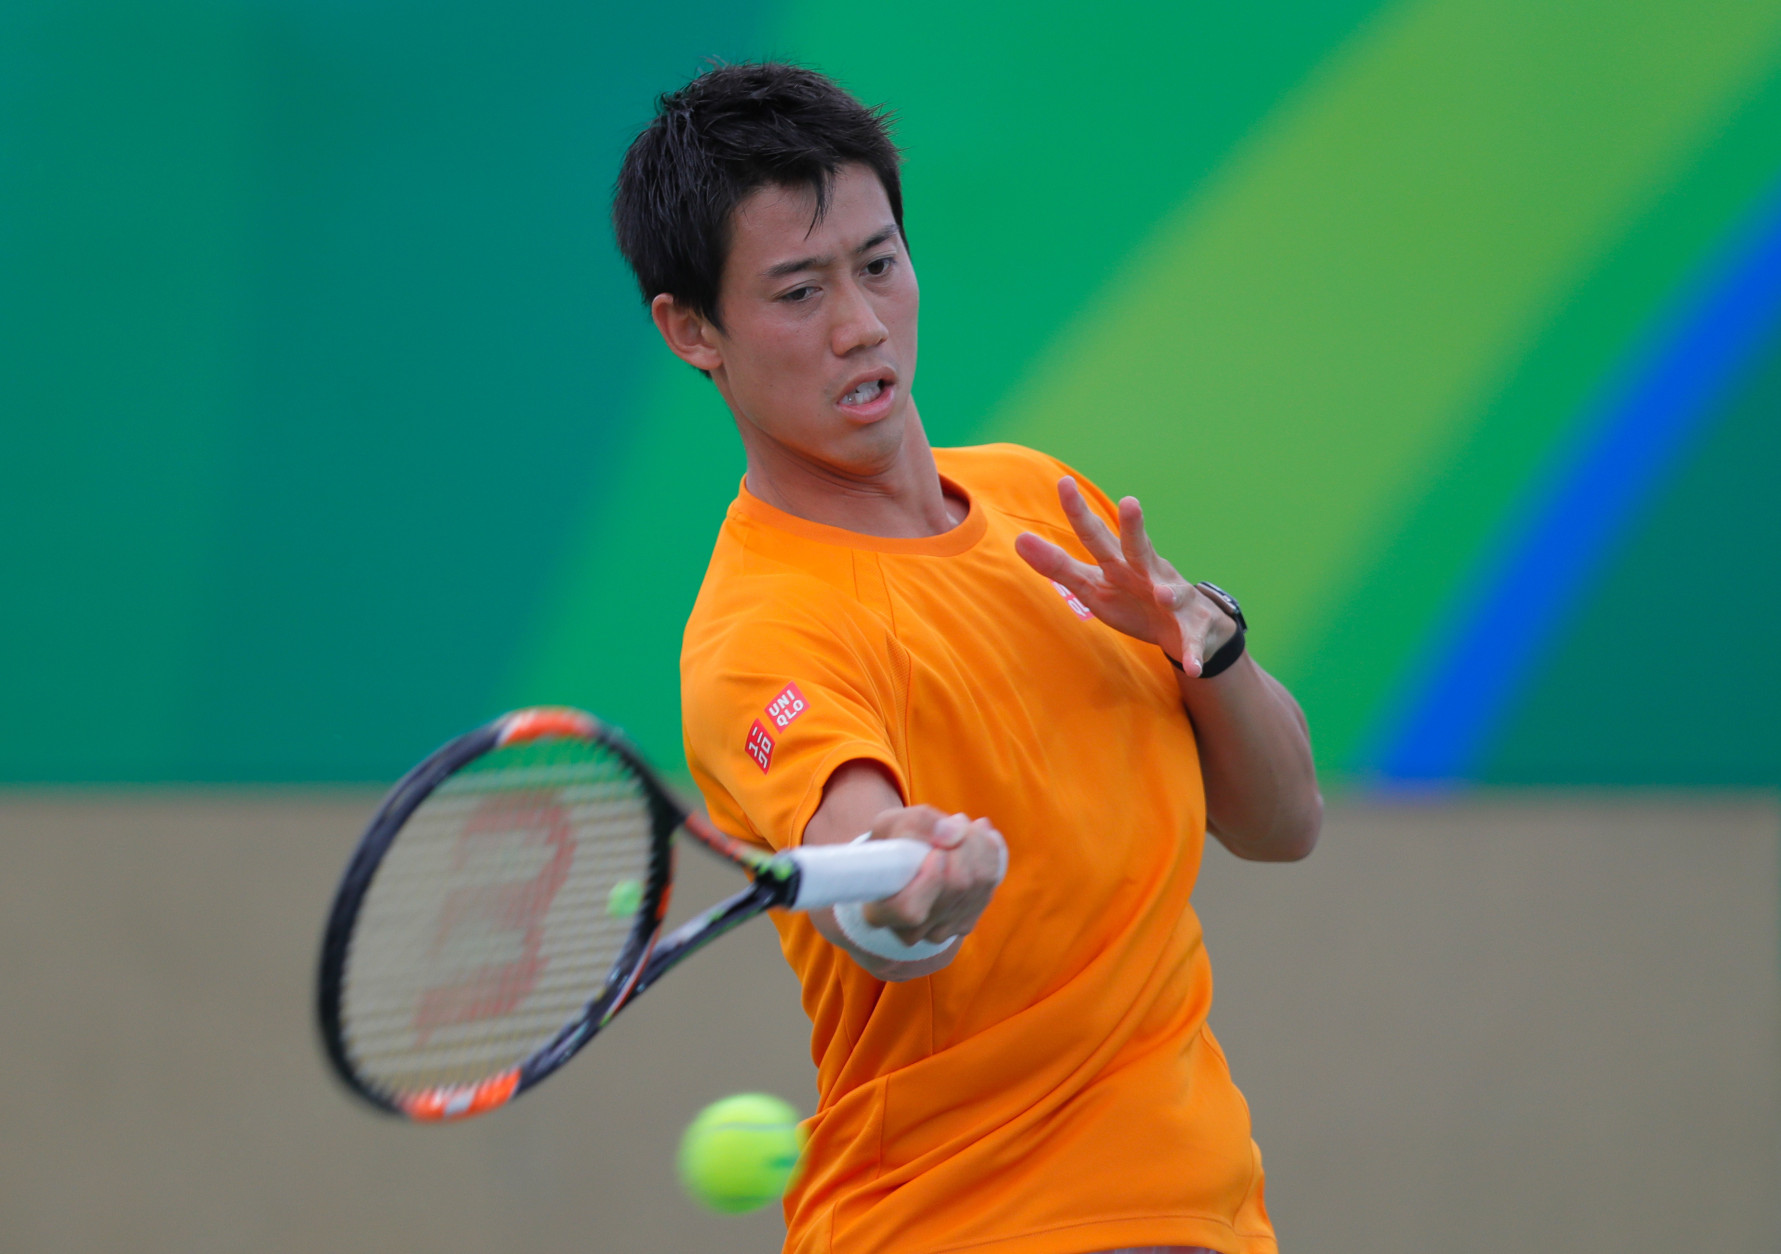 Kei Nishikori of Japan, returns a ball during a practice session ahead of the upcoming 2016 Summer Olympics in Rio de Janeiro, Brazil, Wednesday, Aug. 3, 2016. (AP Photo/Vadim Ghirda)